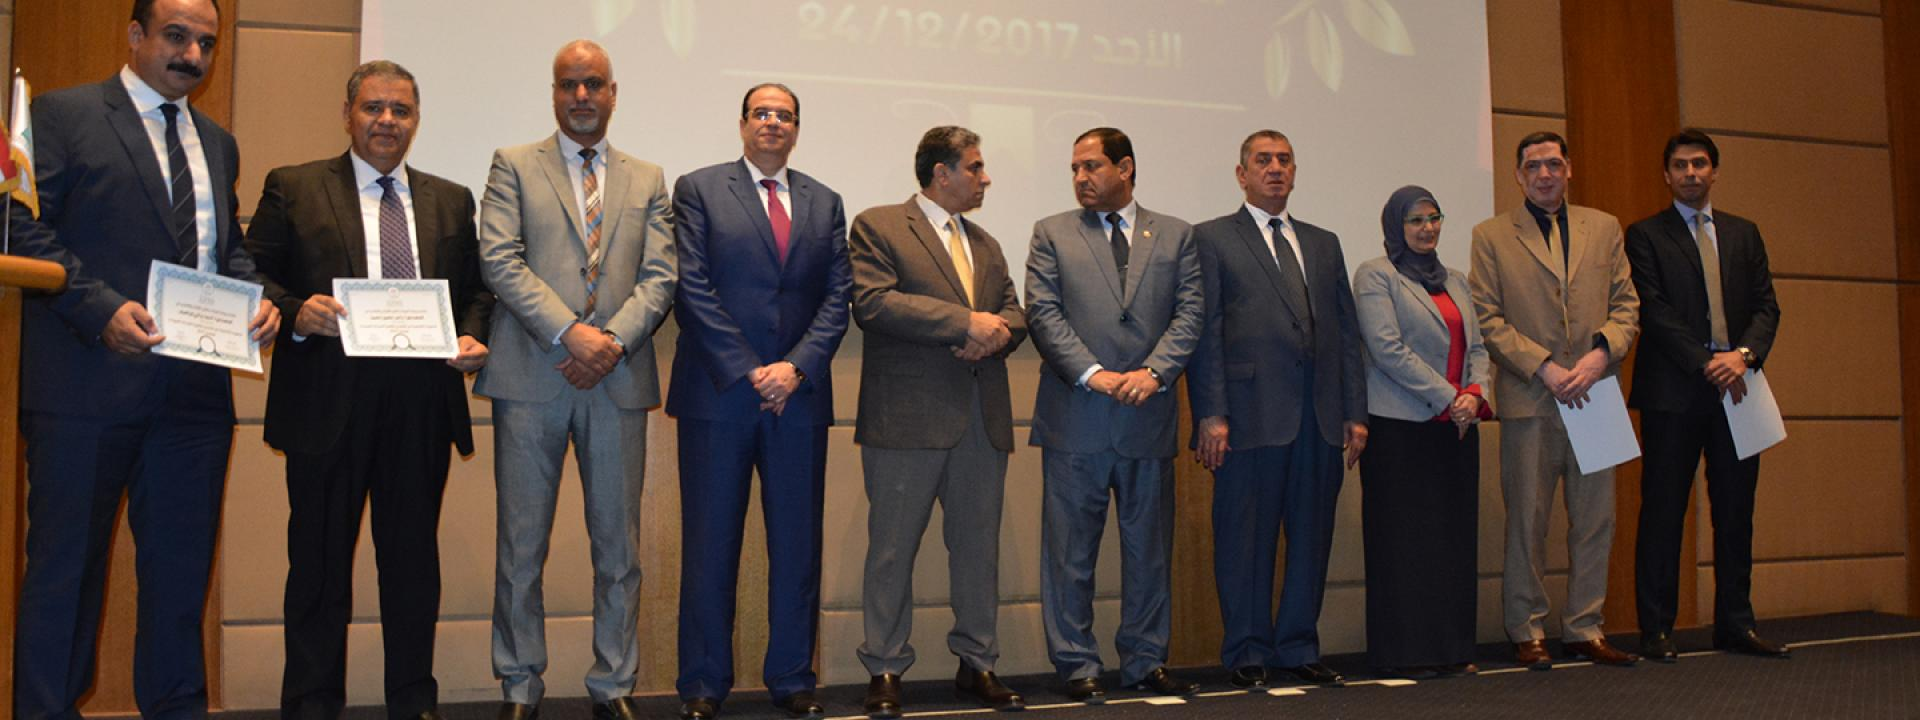 6_Ministry of Environment honors Helwan and Tourah plants.